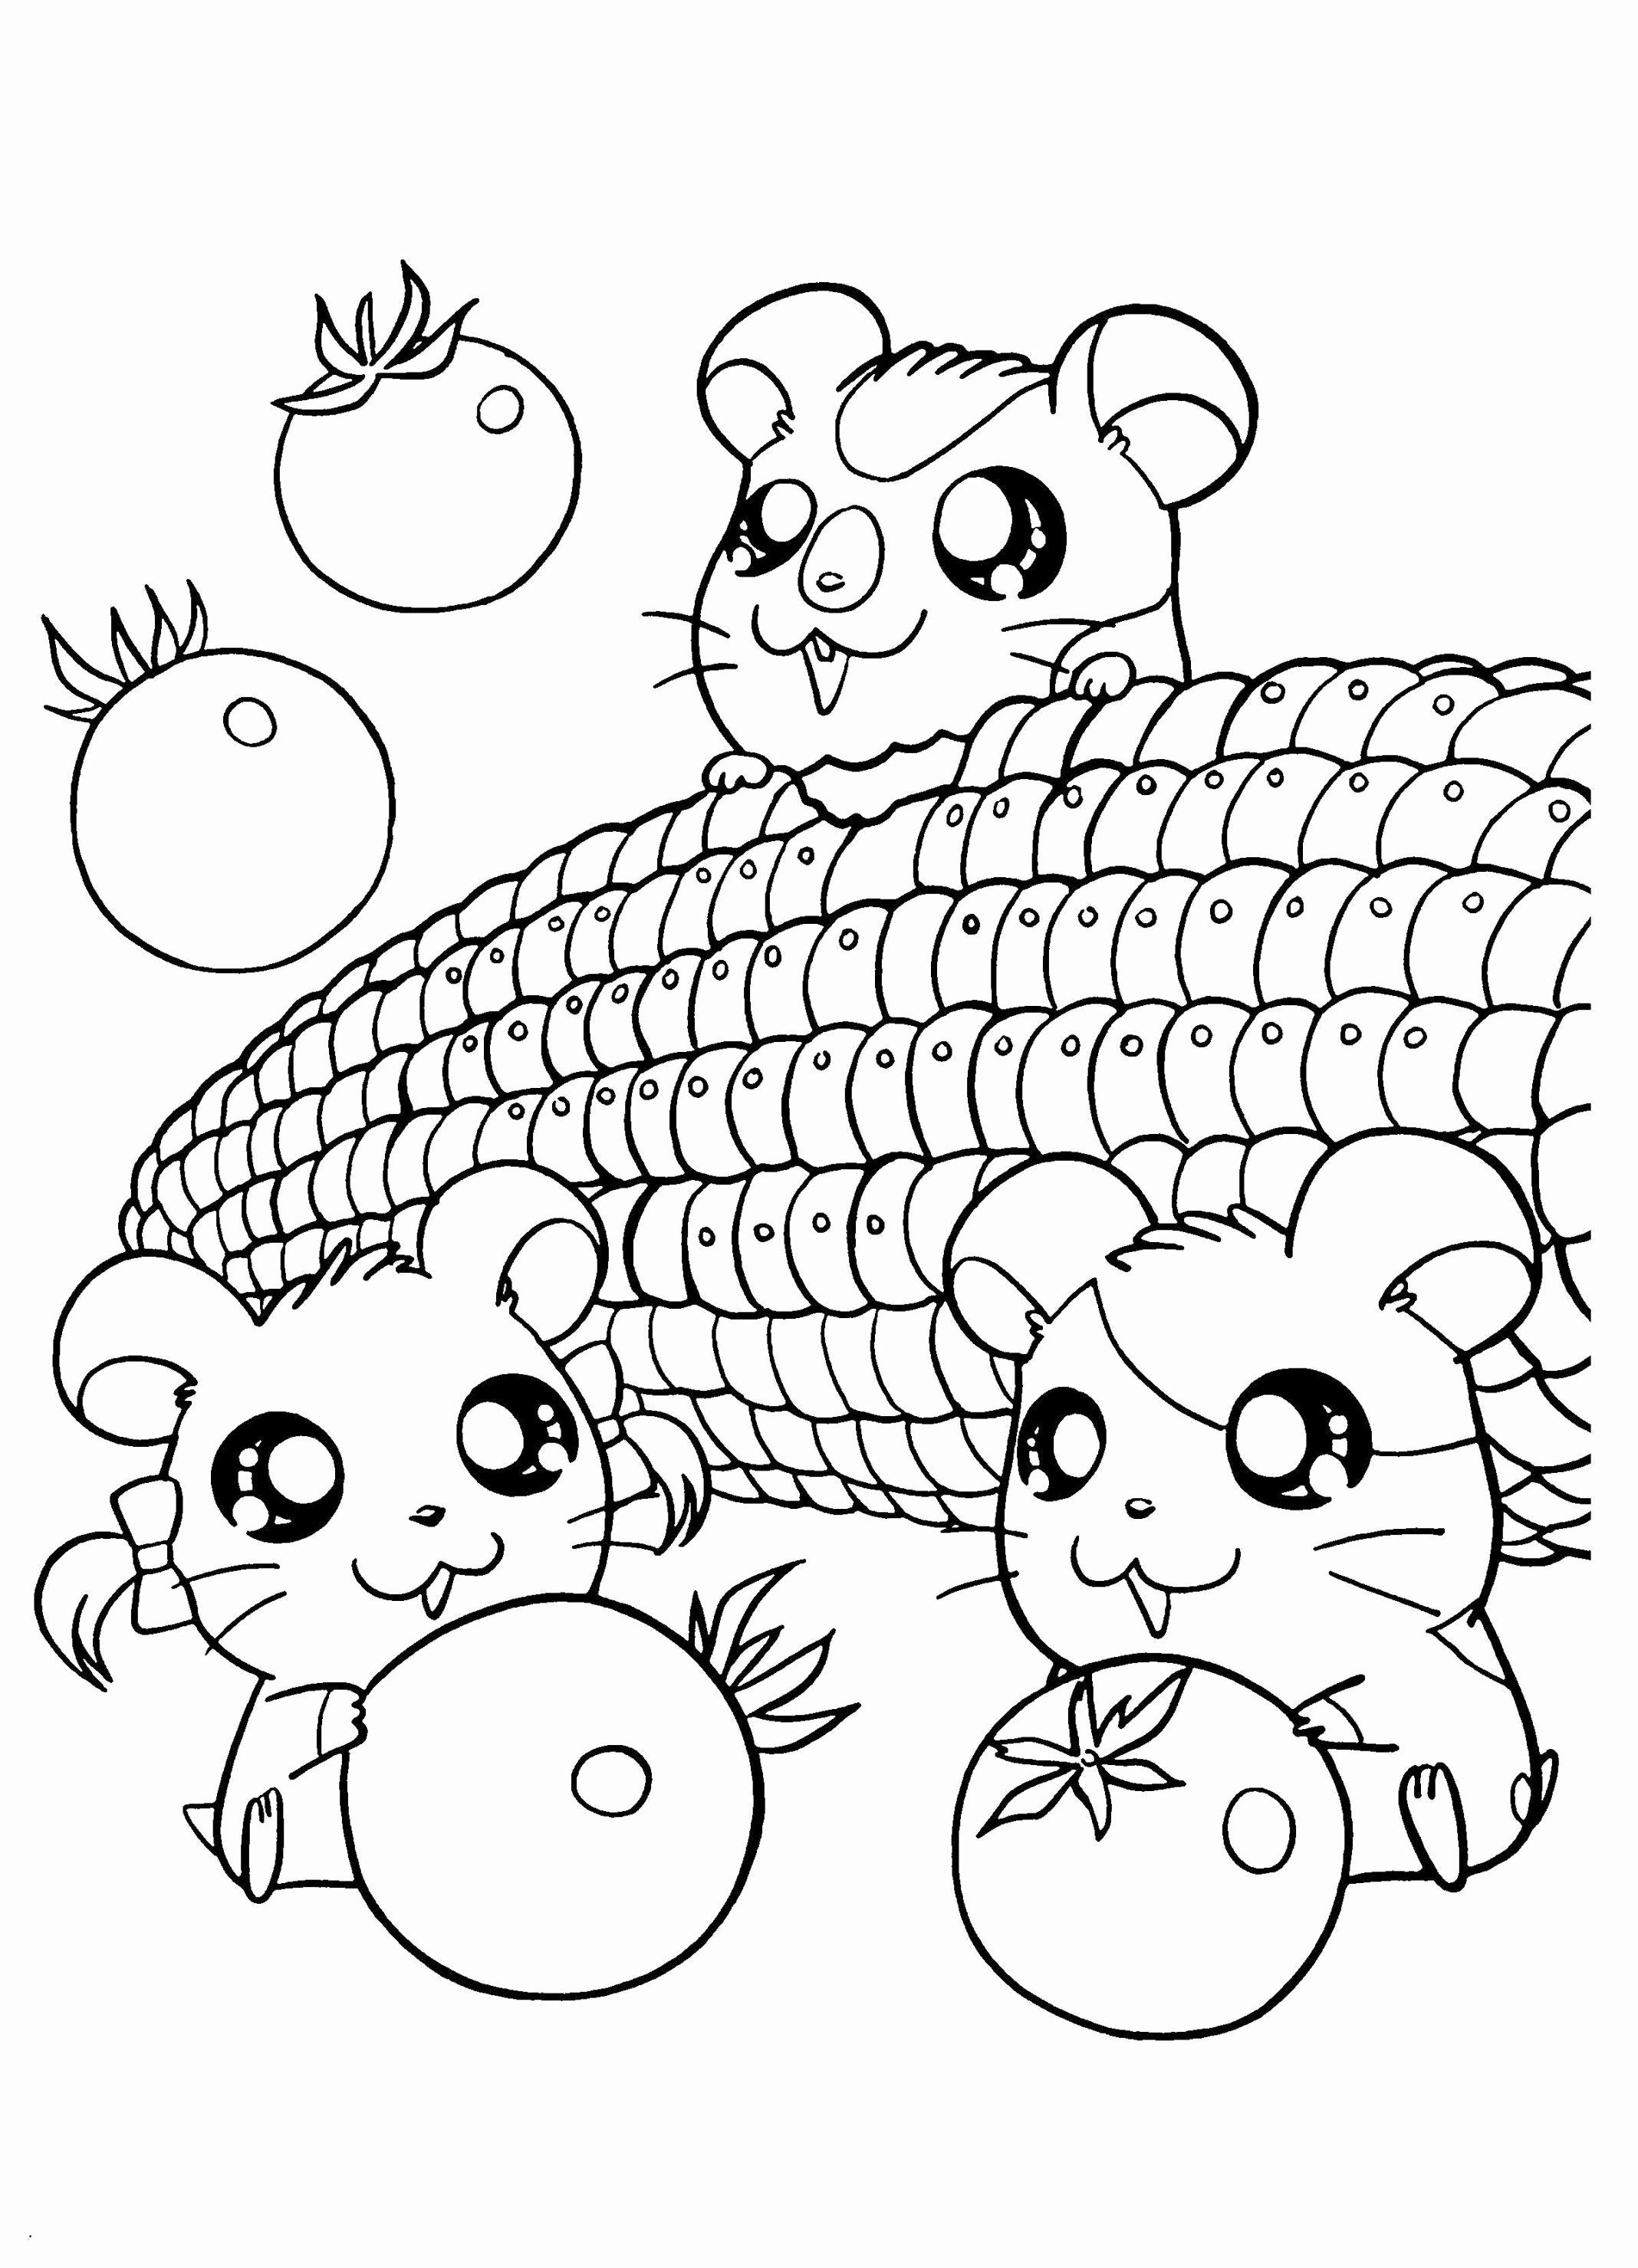 Coloring Pages Animals Mandala Inspirational Mandalas Para Pintar